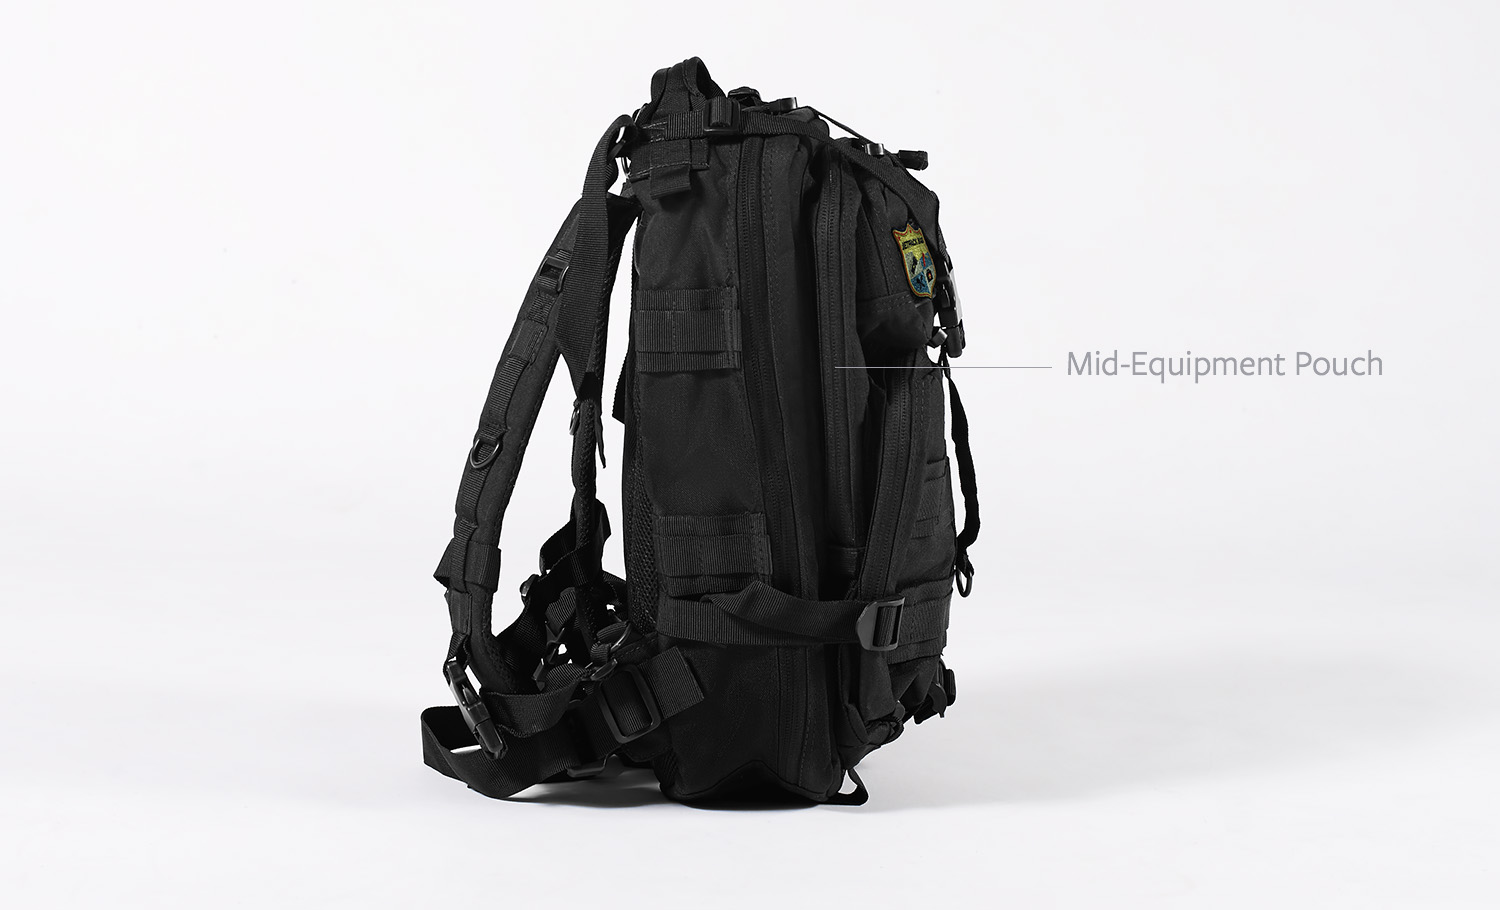 SOLO PACK Mid-Equipment Pouch